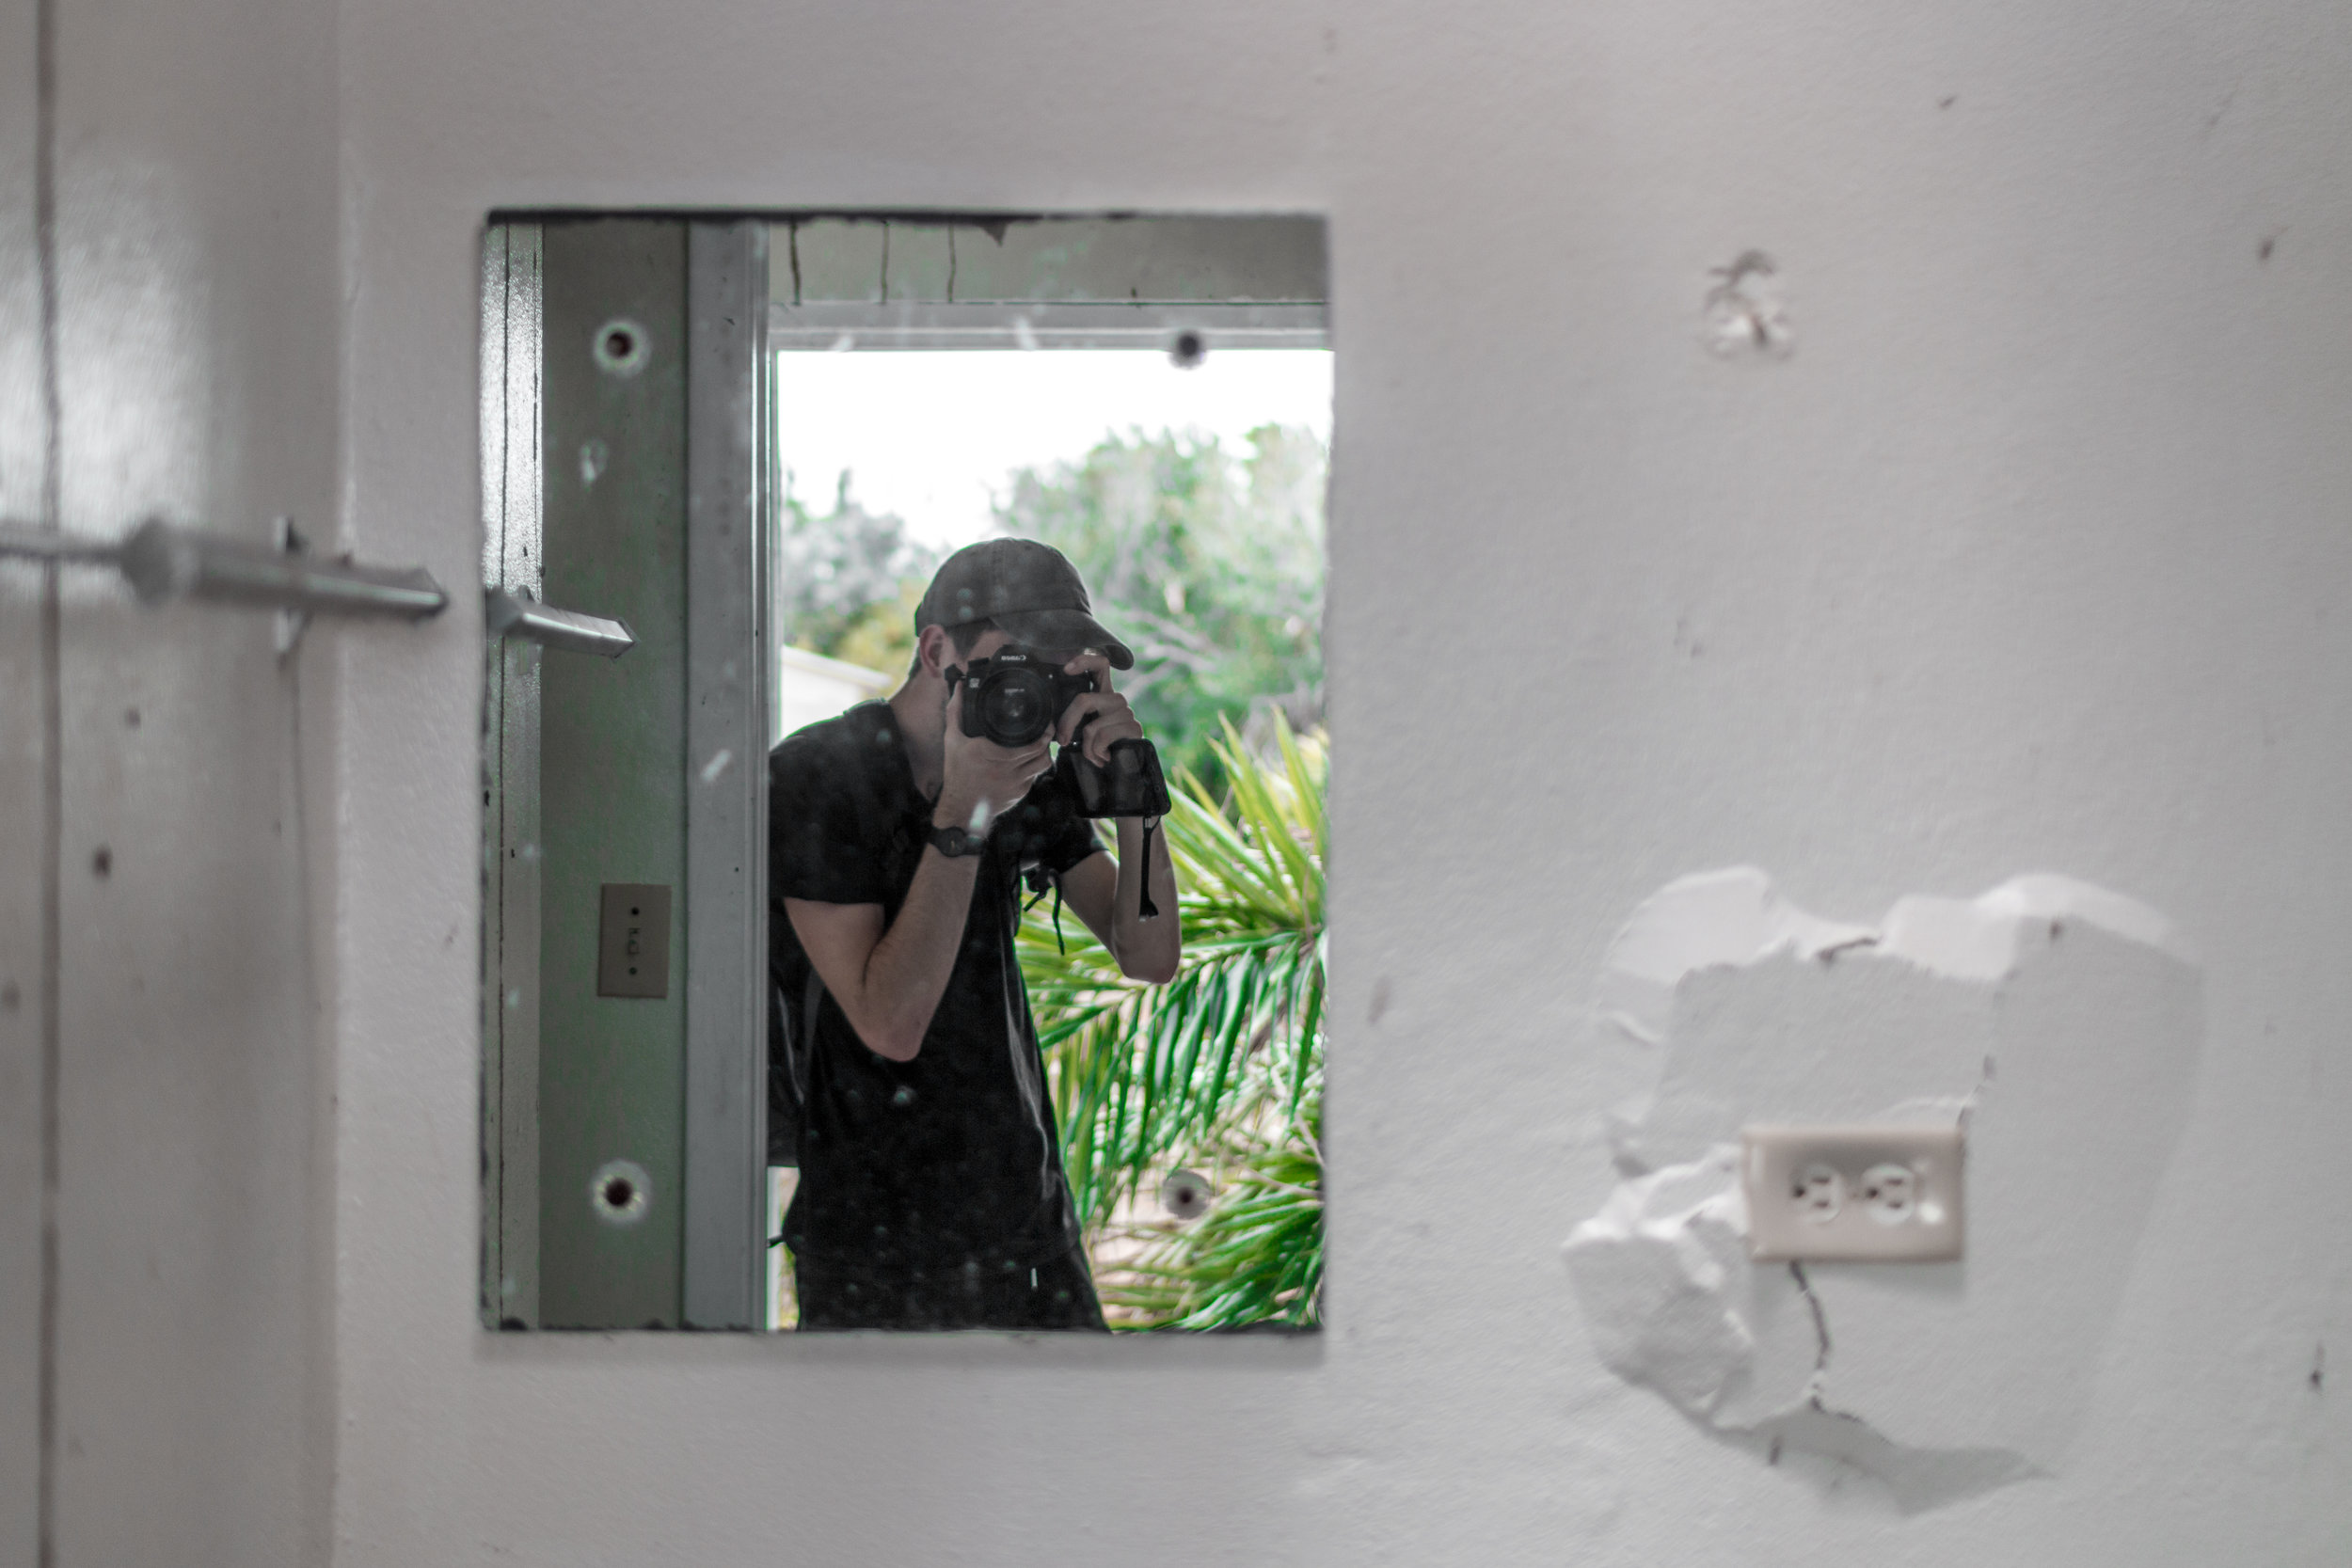 Mirror selfie in an abandoned house on an island in the middle of the ocean!